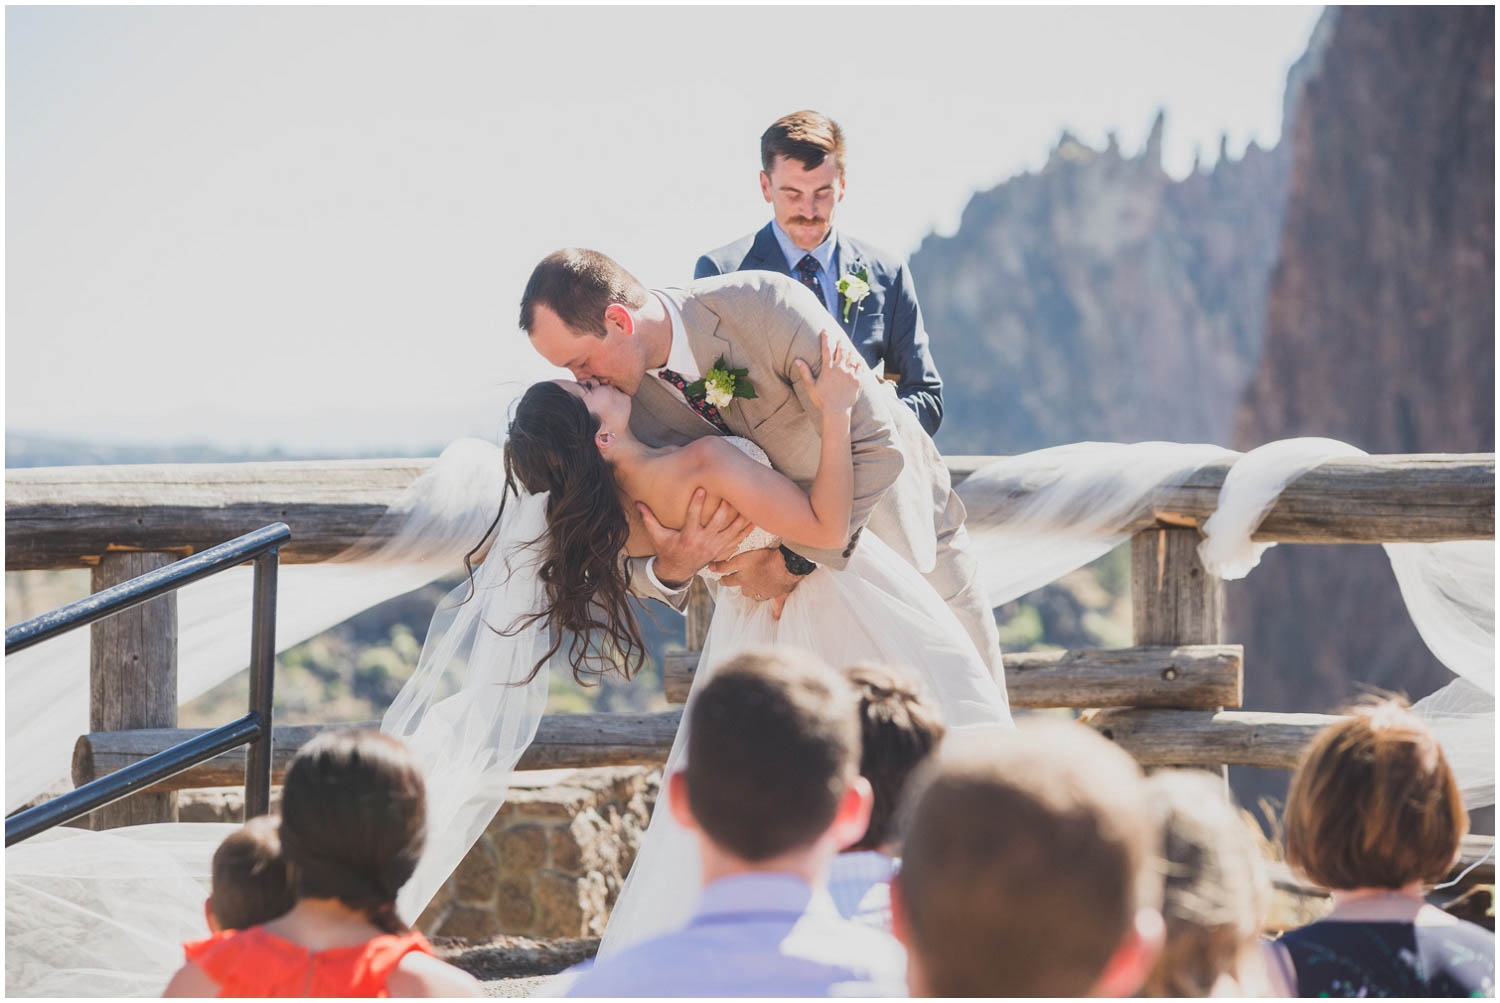 romantic dip kiss at the end of wedding ceremony at smith rock